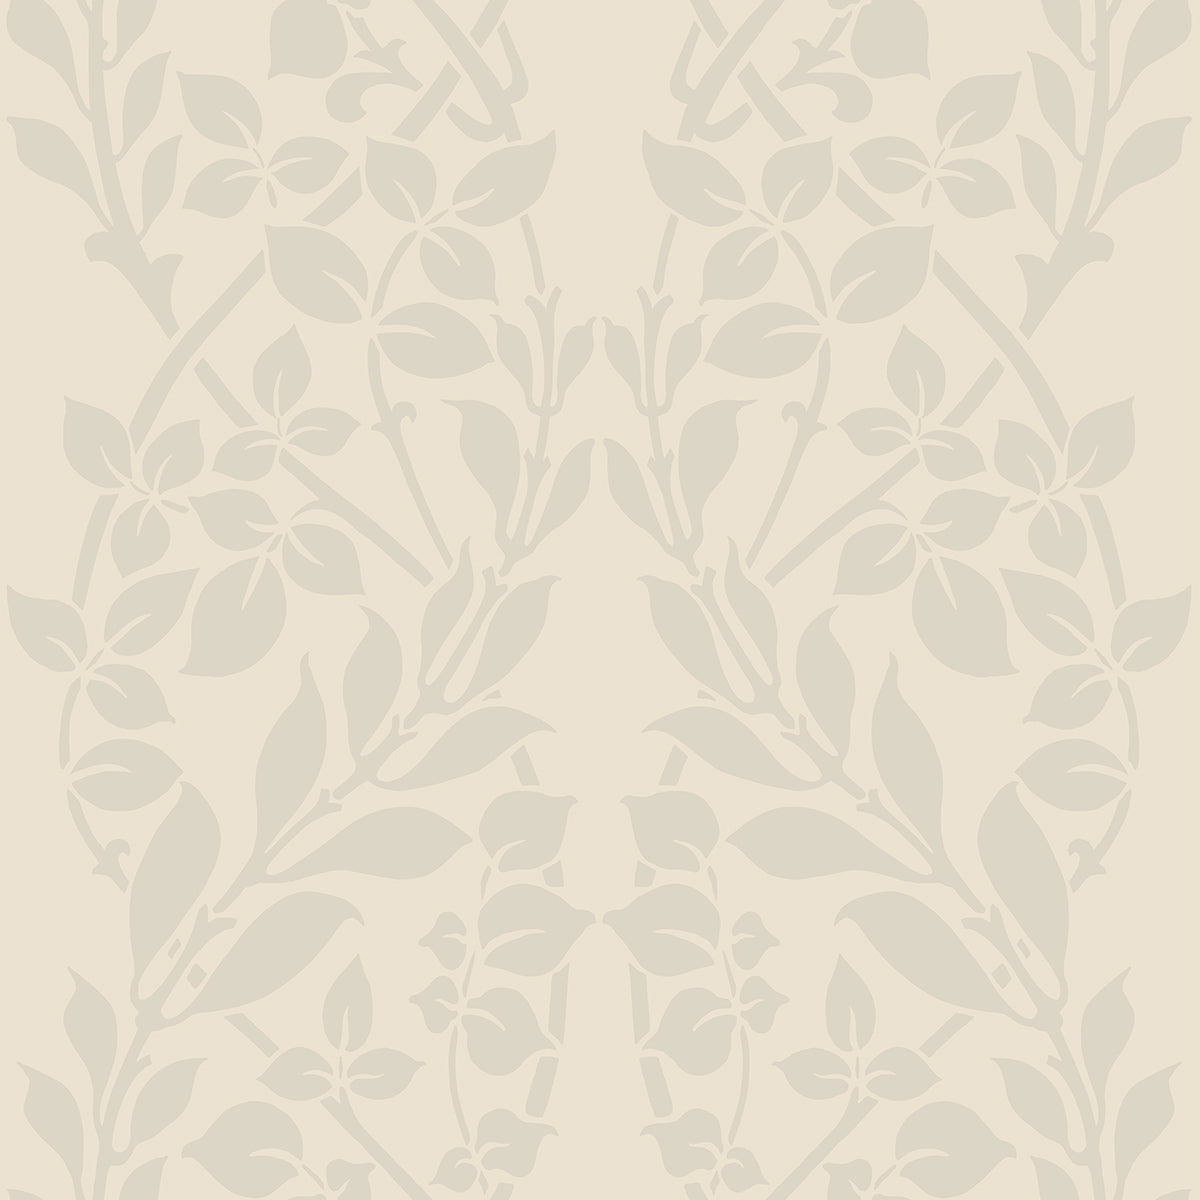 Candice Olson Decadence Botanica Wallpaper in Offwhite